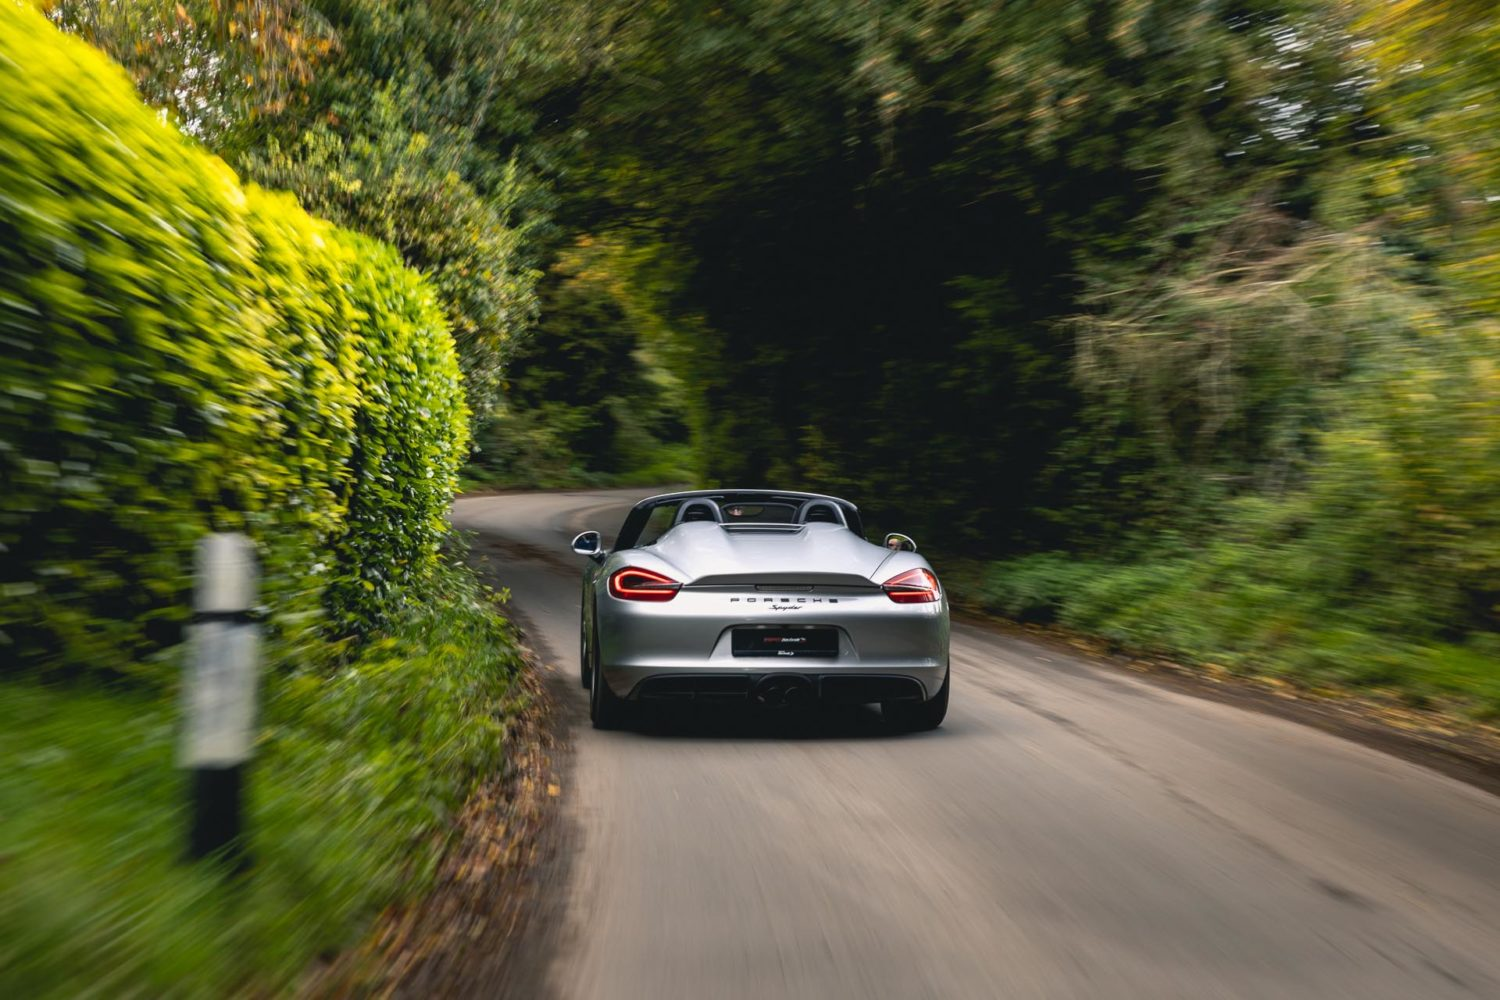 981 boxster spyder driving